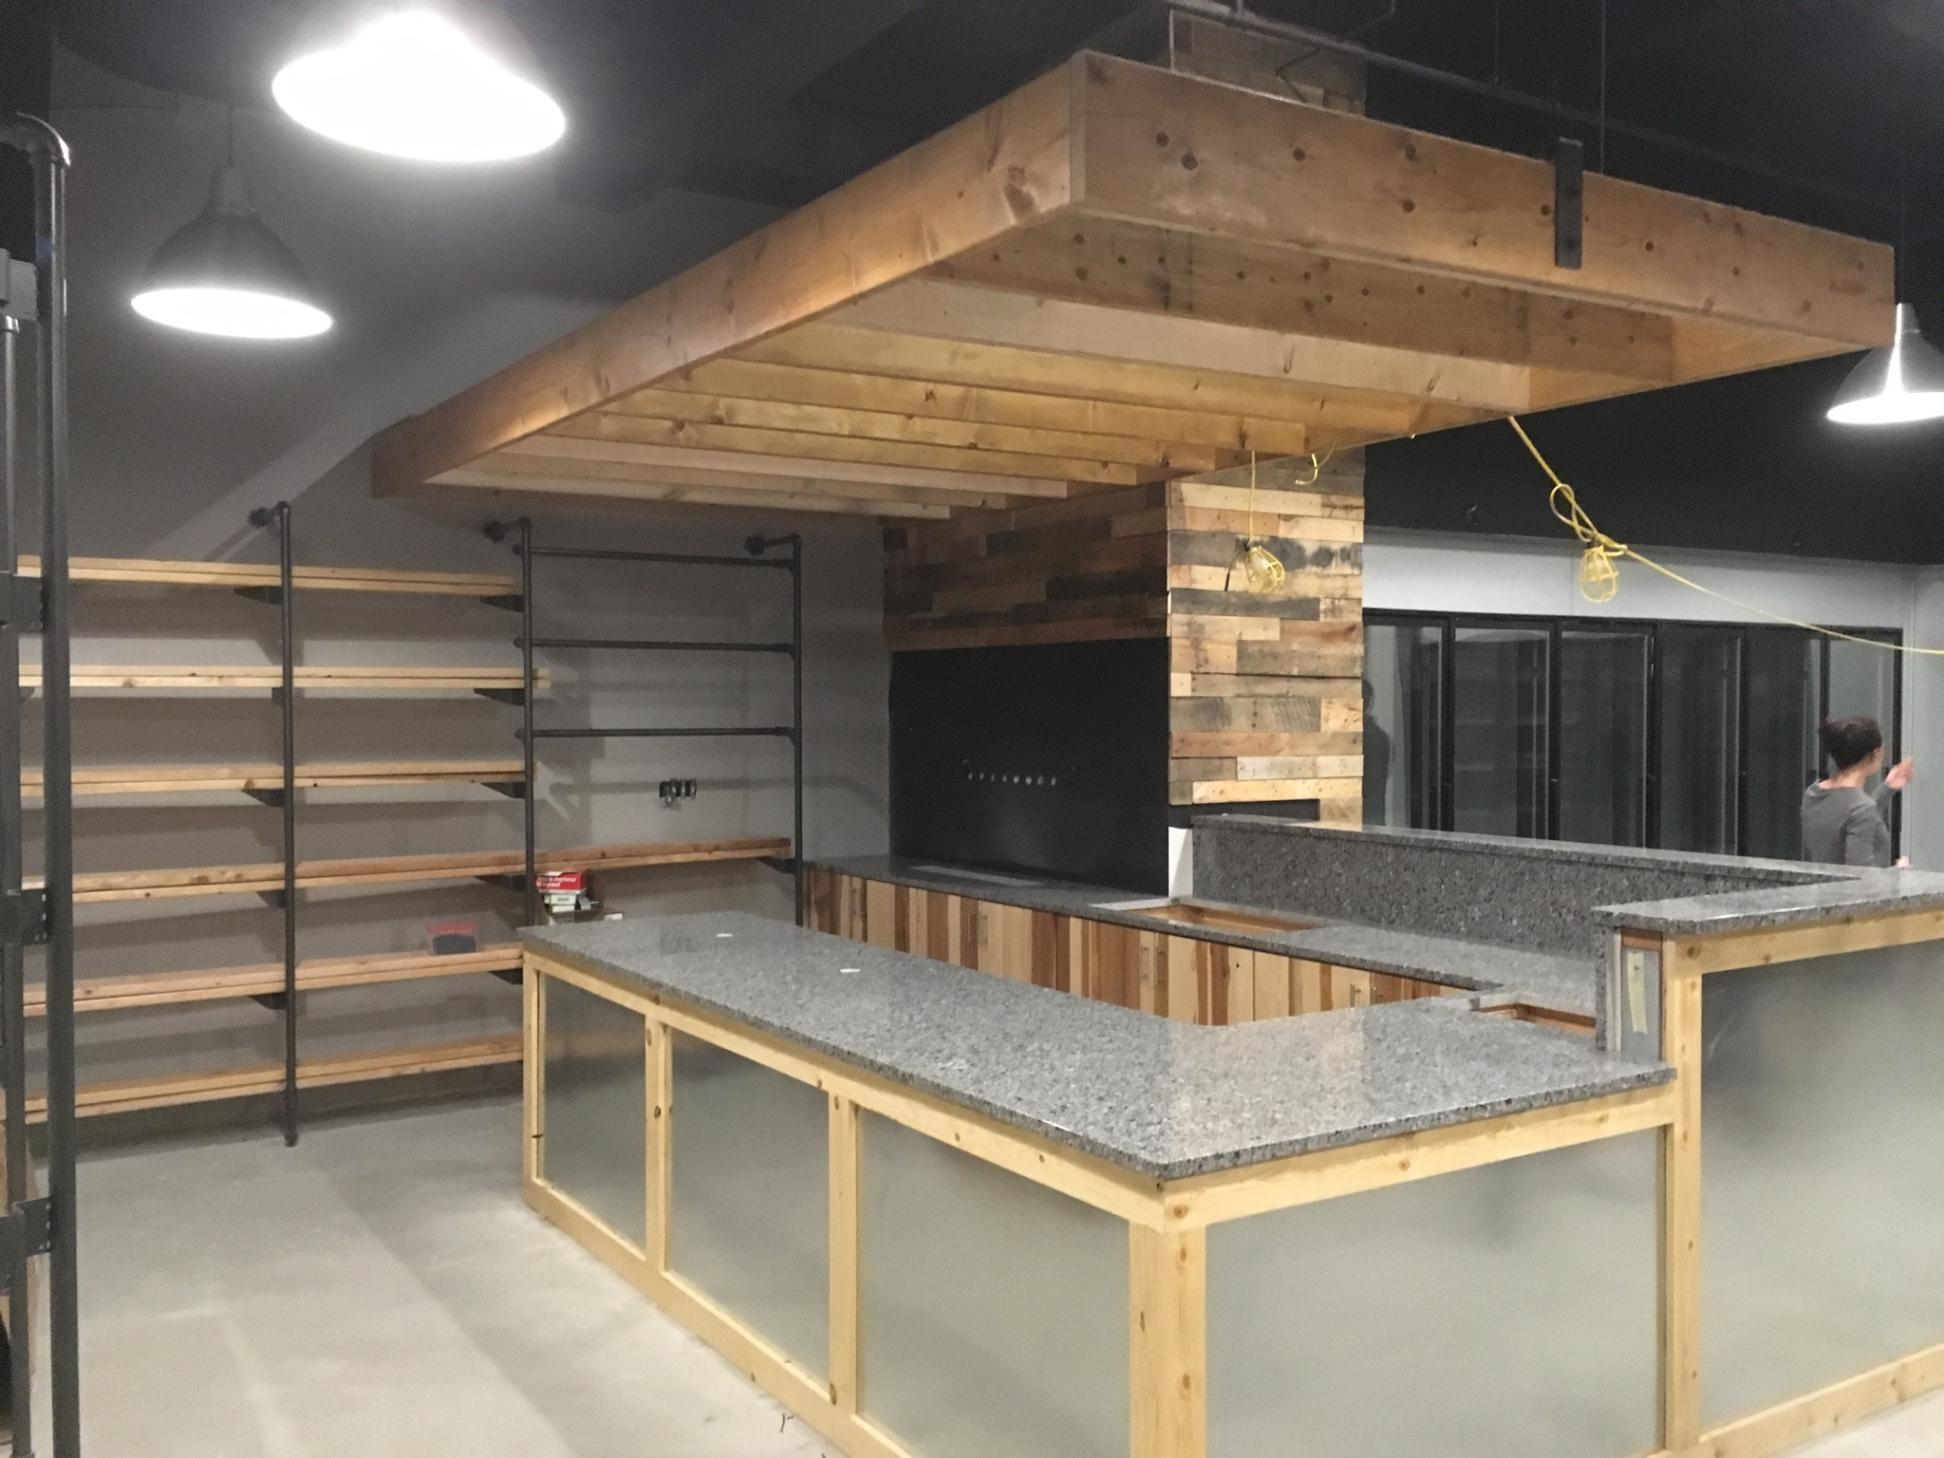 New, shiny countertops and hanging pendants almost make this picture look fake (It's real!)